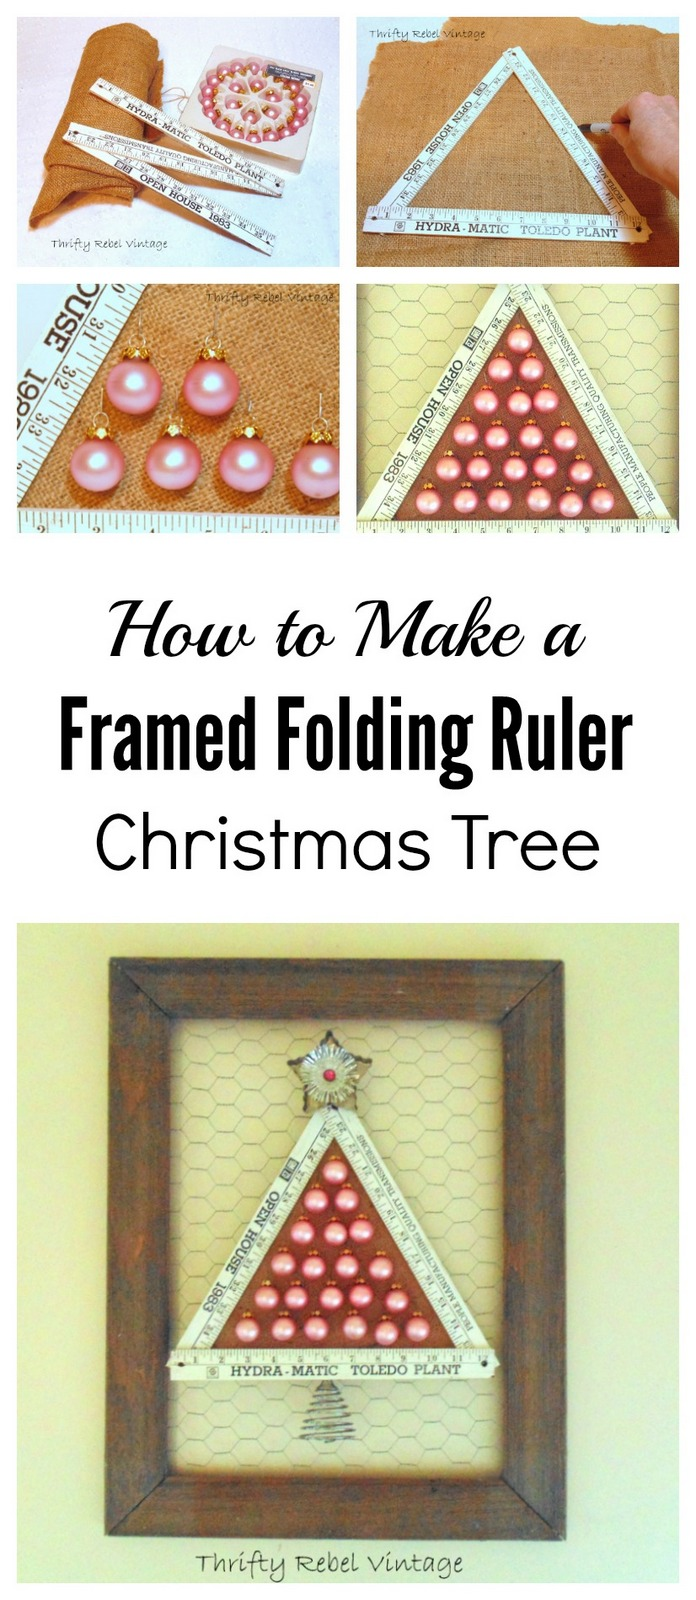 How to make a framed folding ruler Christmas tree